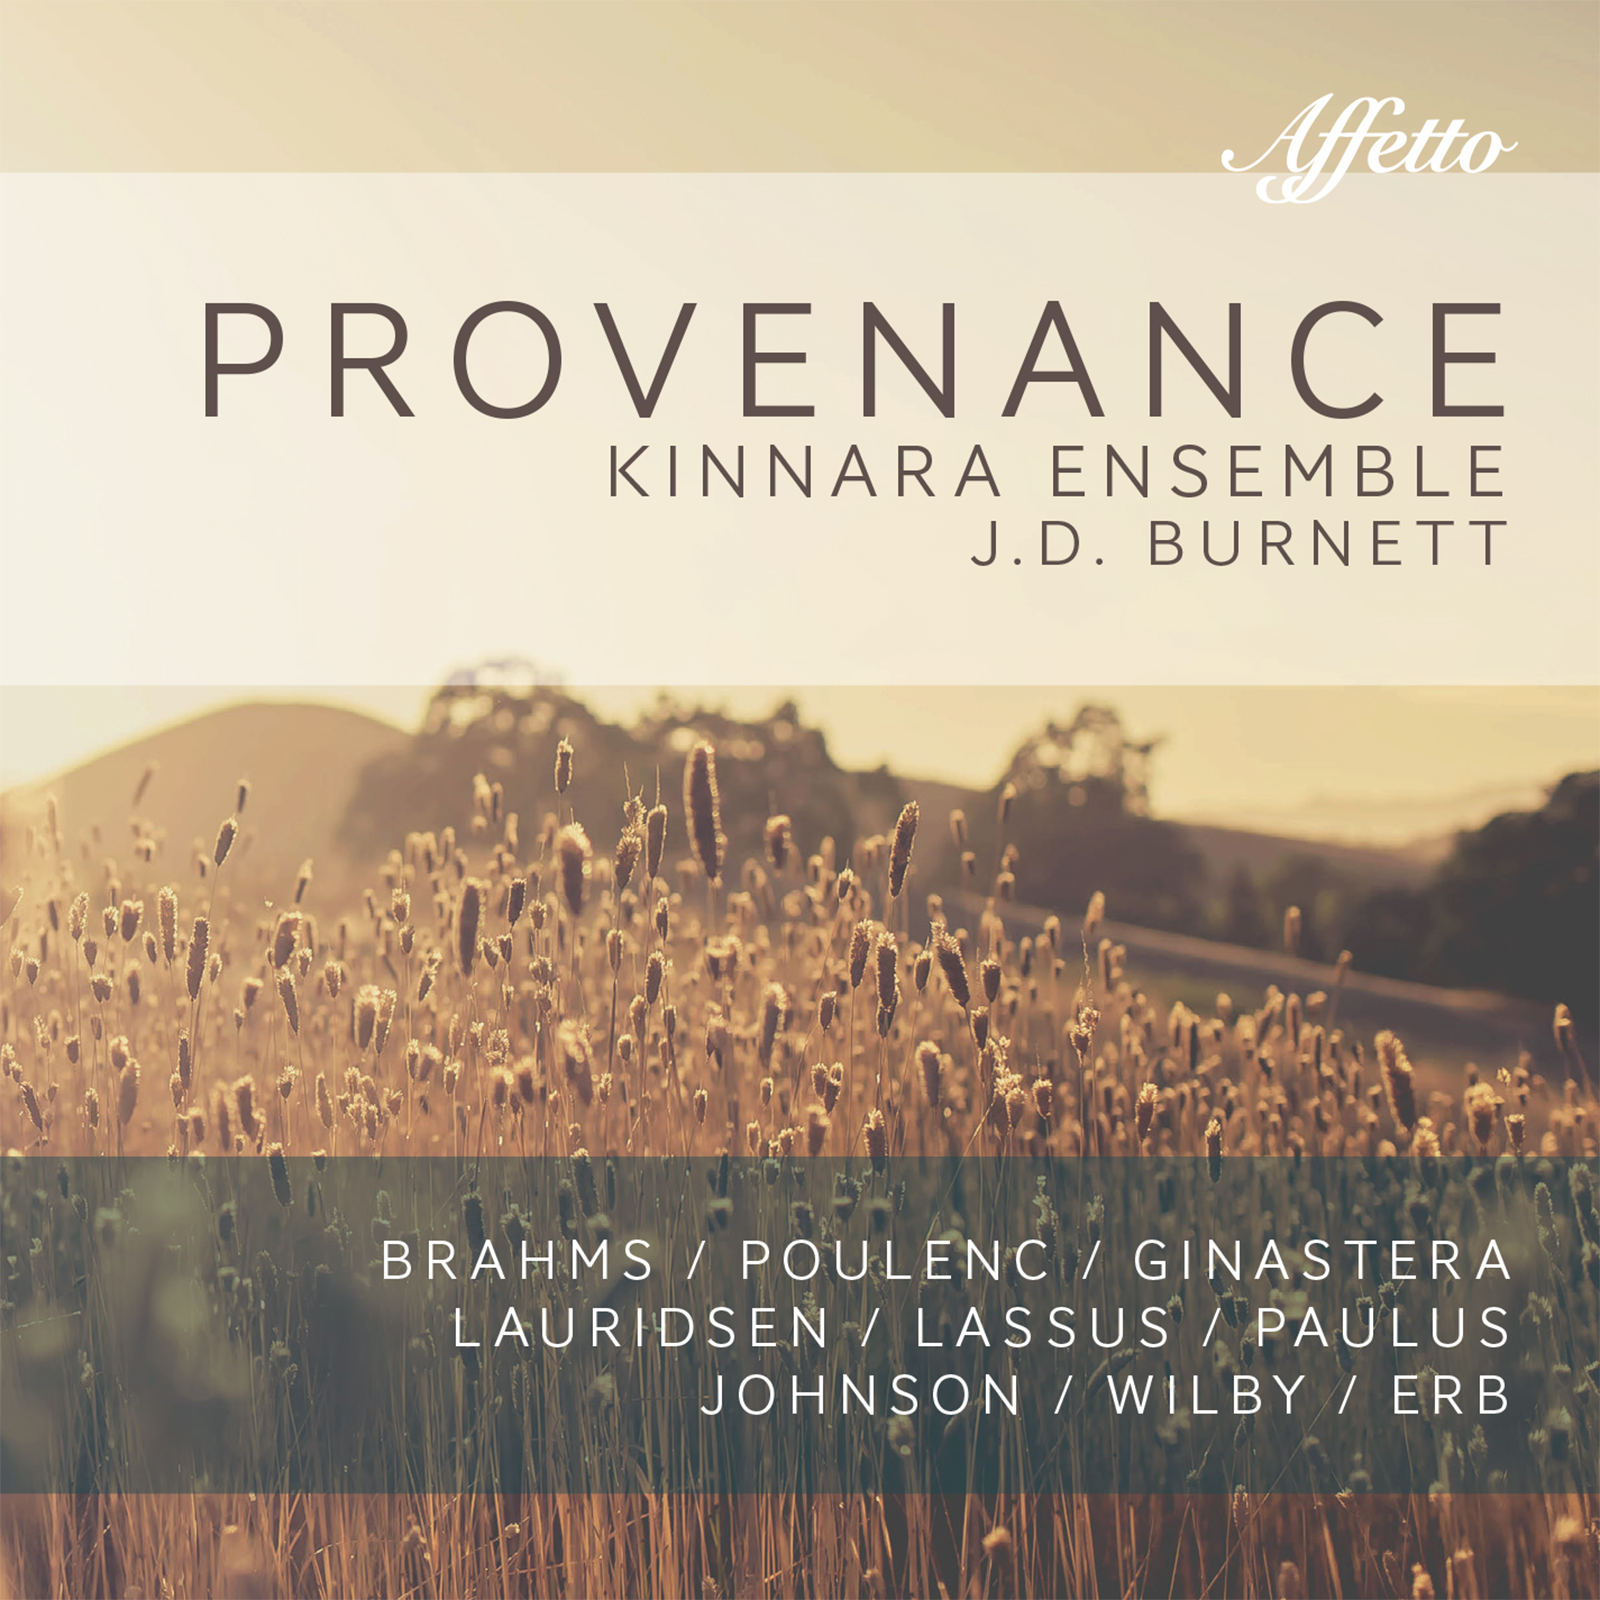 Provenance by the Kinnara Ensemble / J.D. Burnett